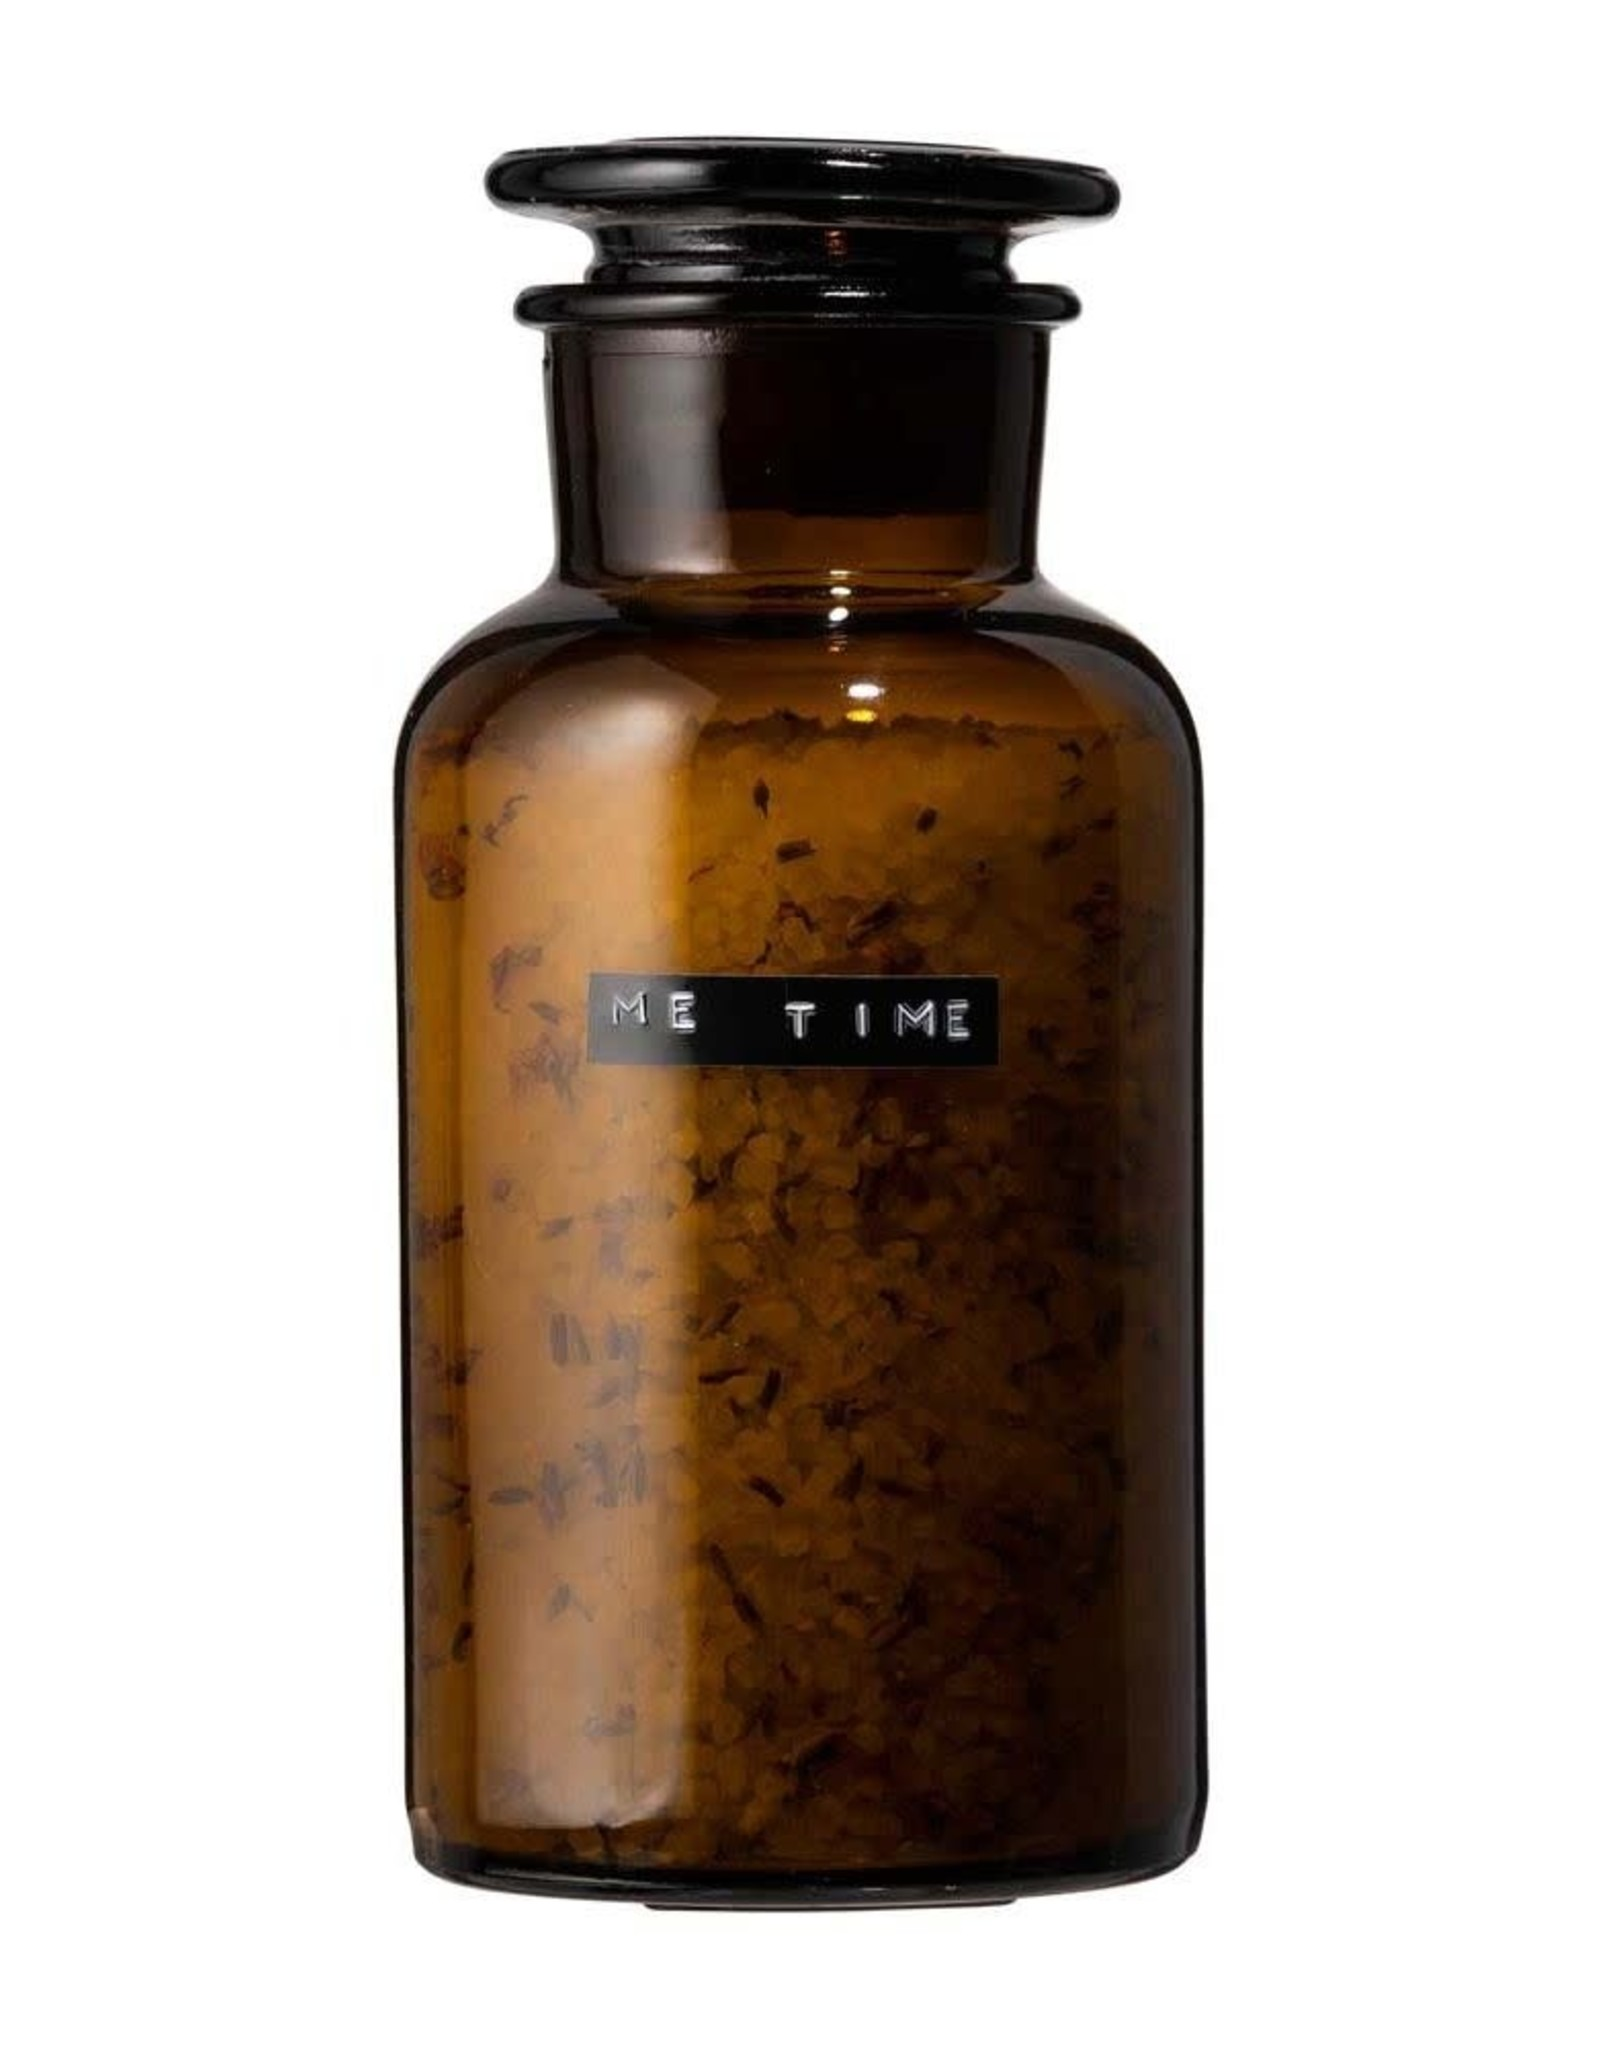 wellmark Apothekers Pot Bruin Badzout 'Me Time' 500ml